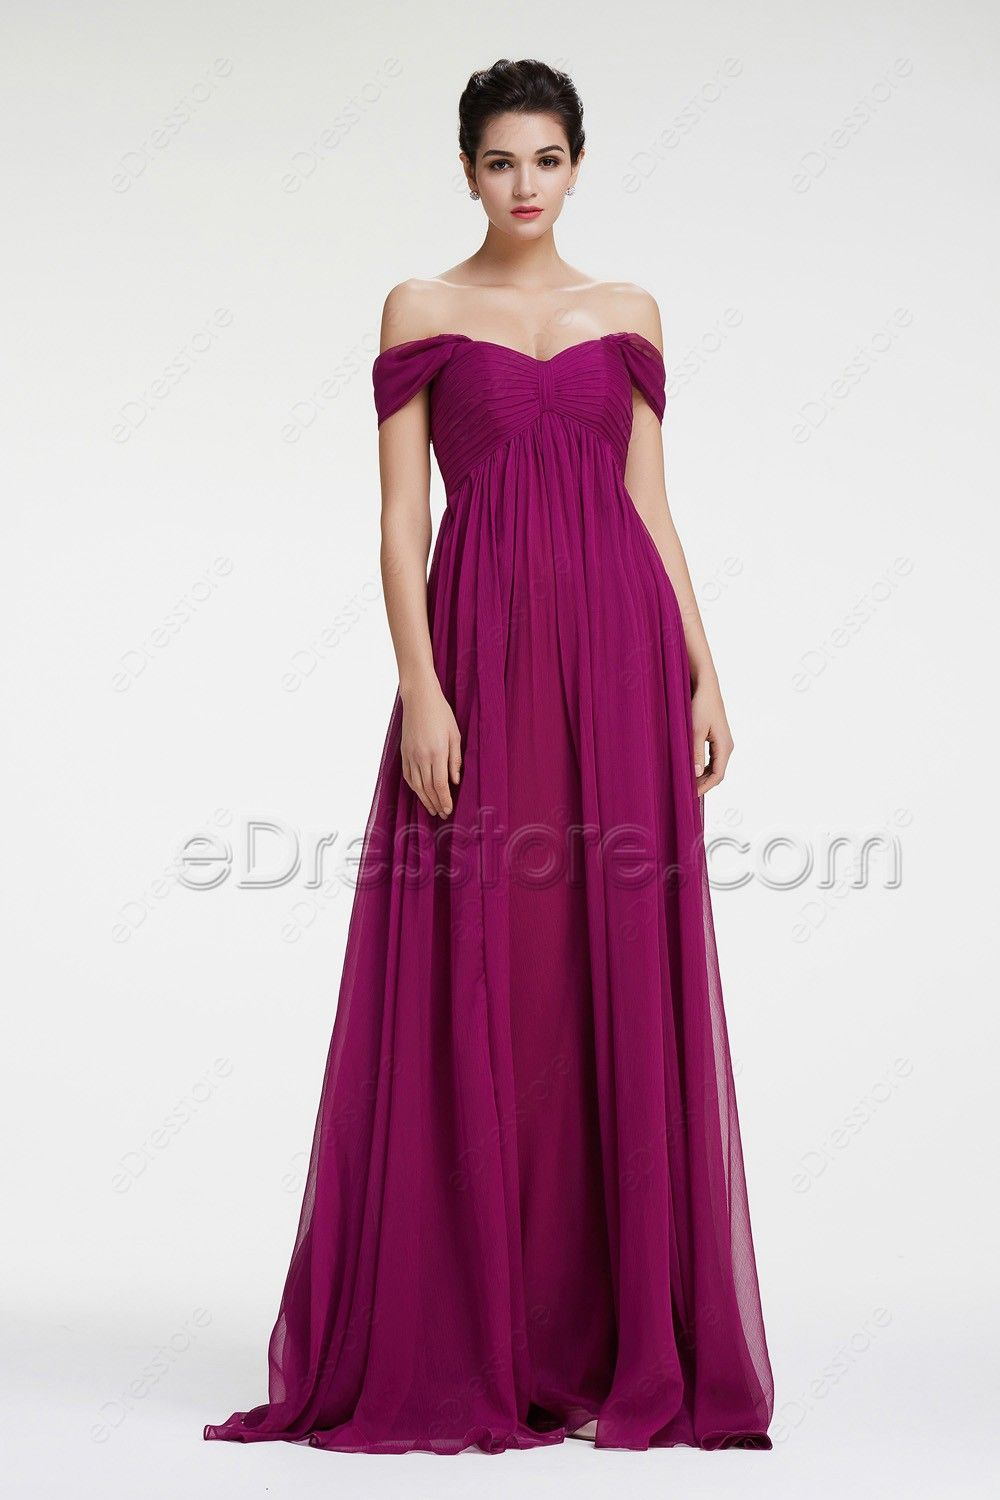 d3433aed312 The magenta bridesmaid dress features sweetheart neckline with off the  shoulder